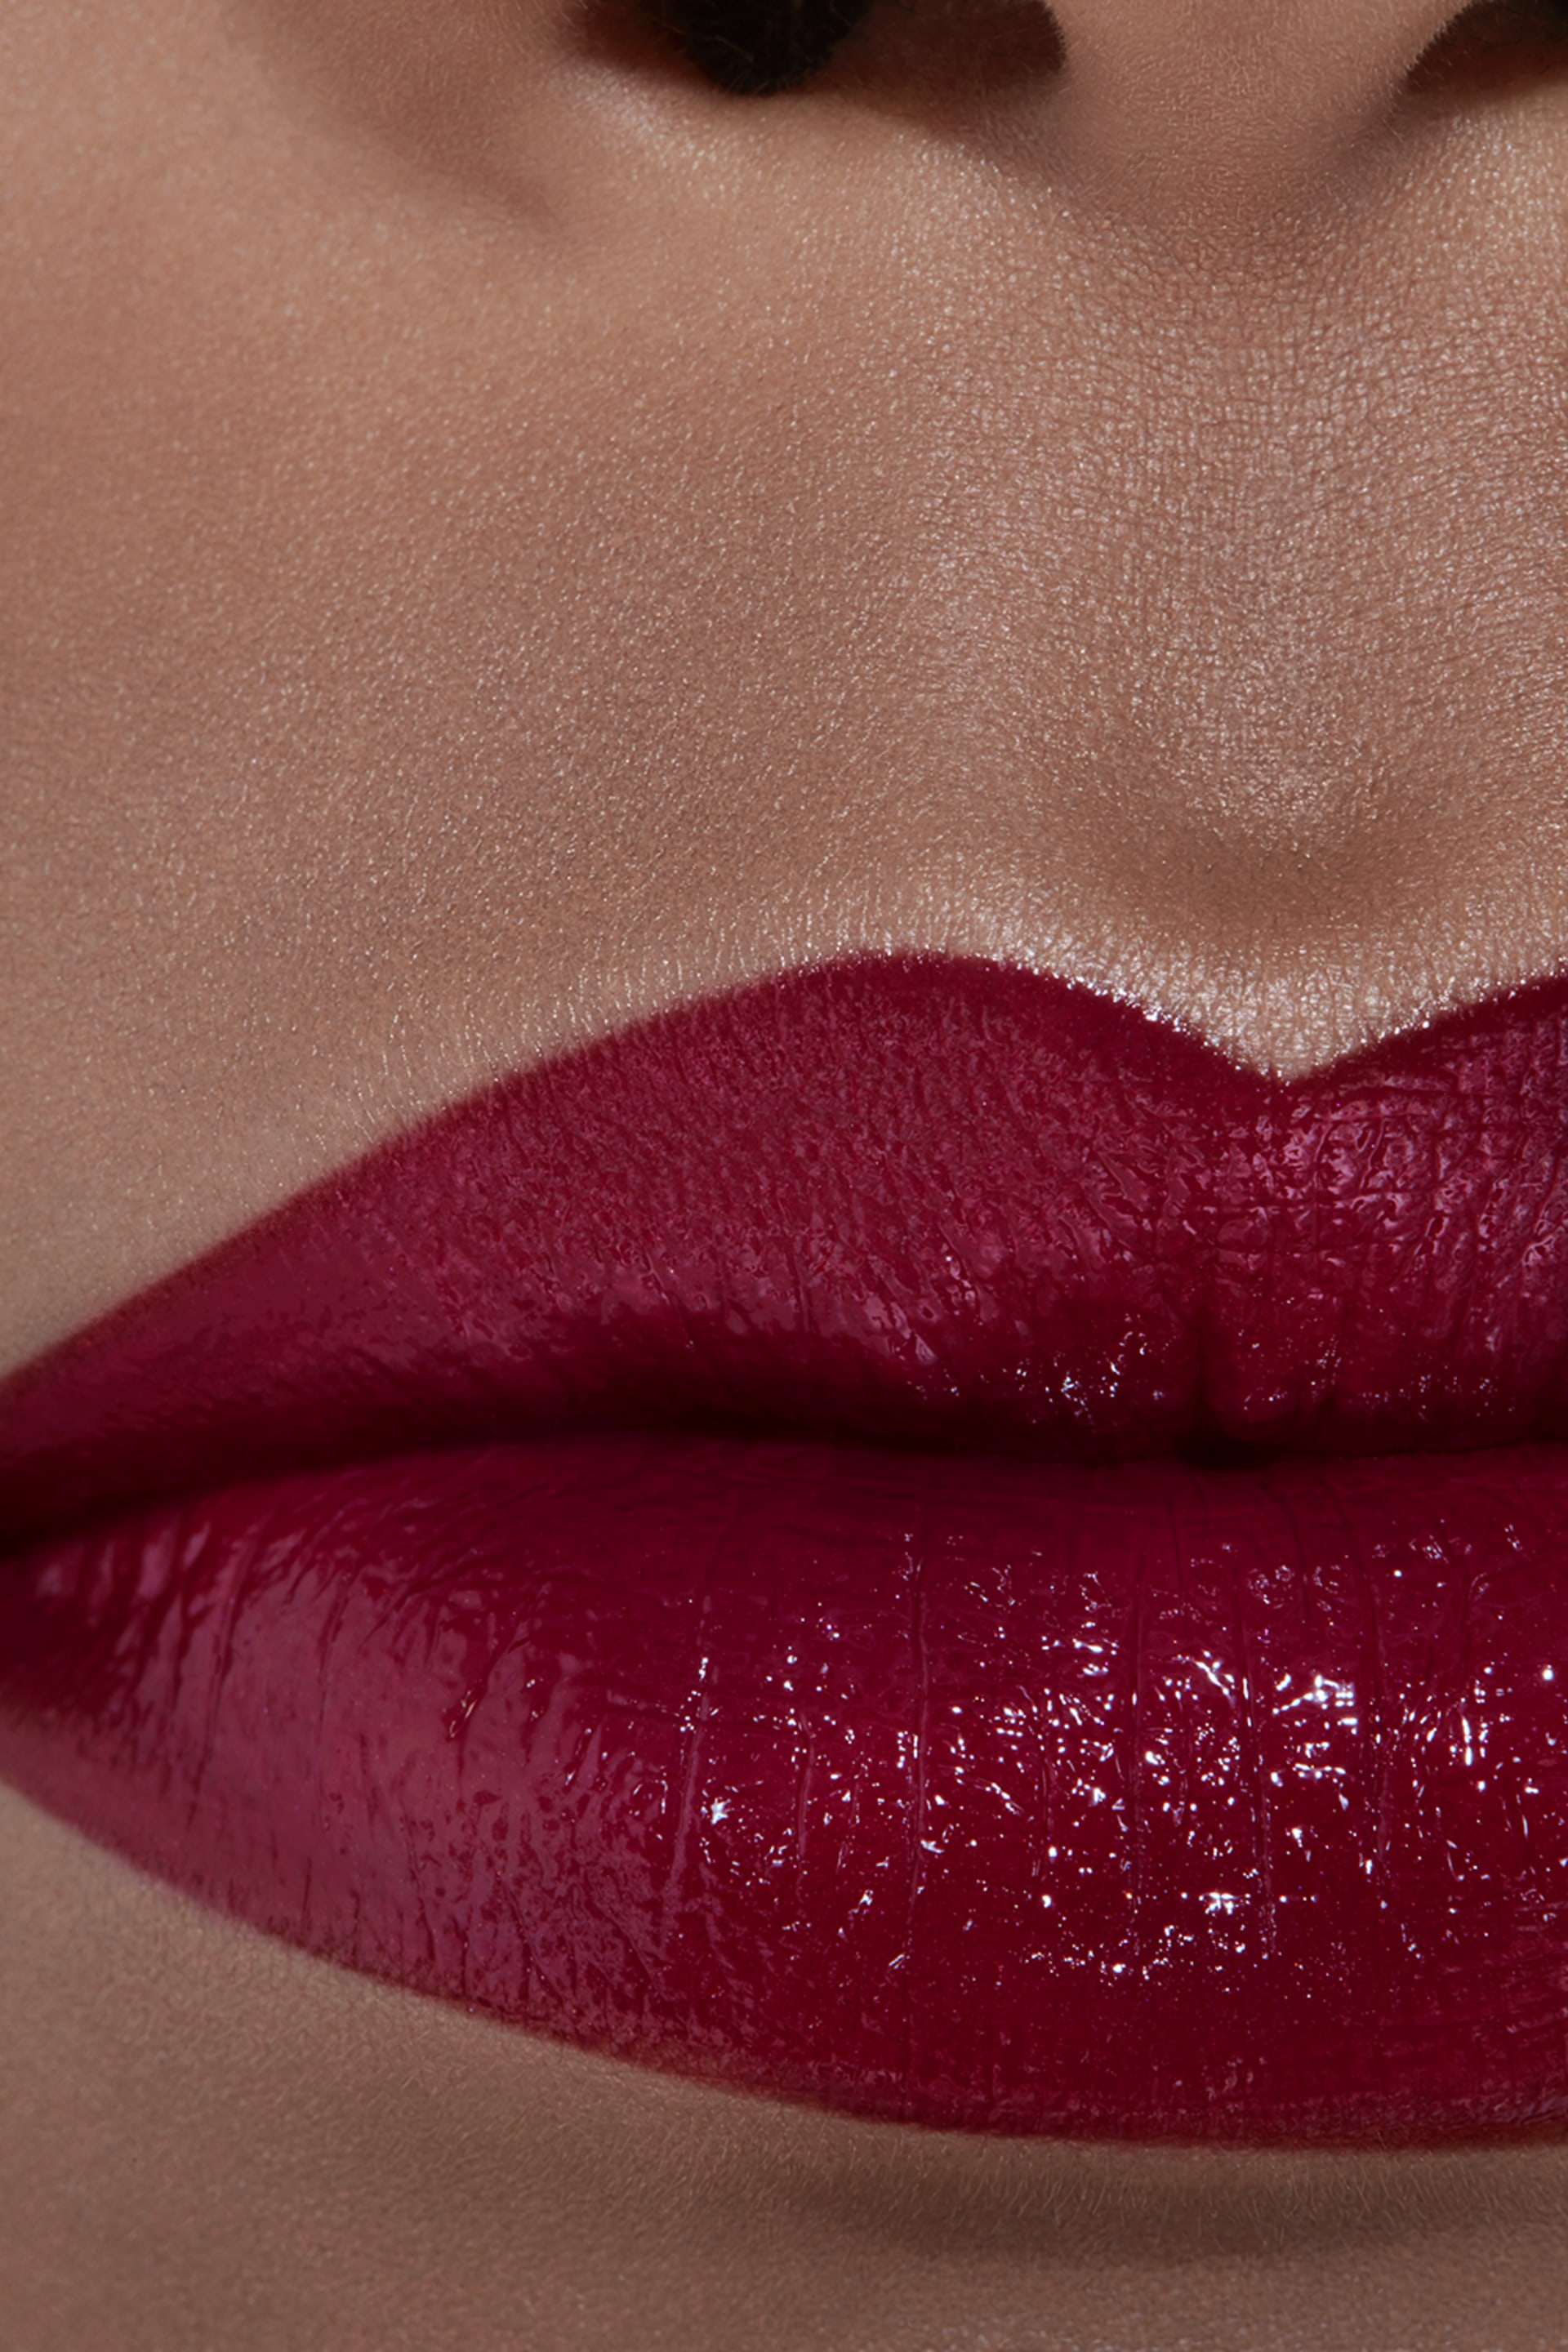 Application makeup visual 2 - ROUGE COCO 470 - MARTHE